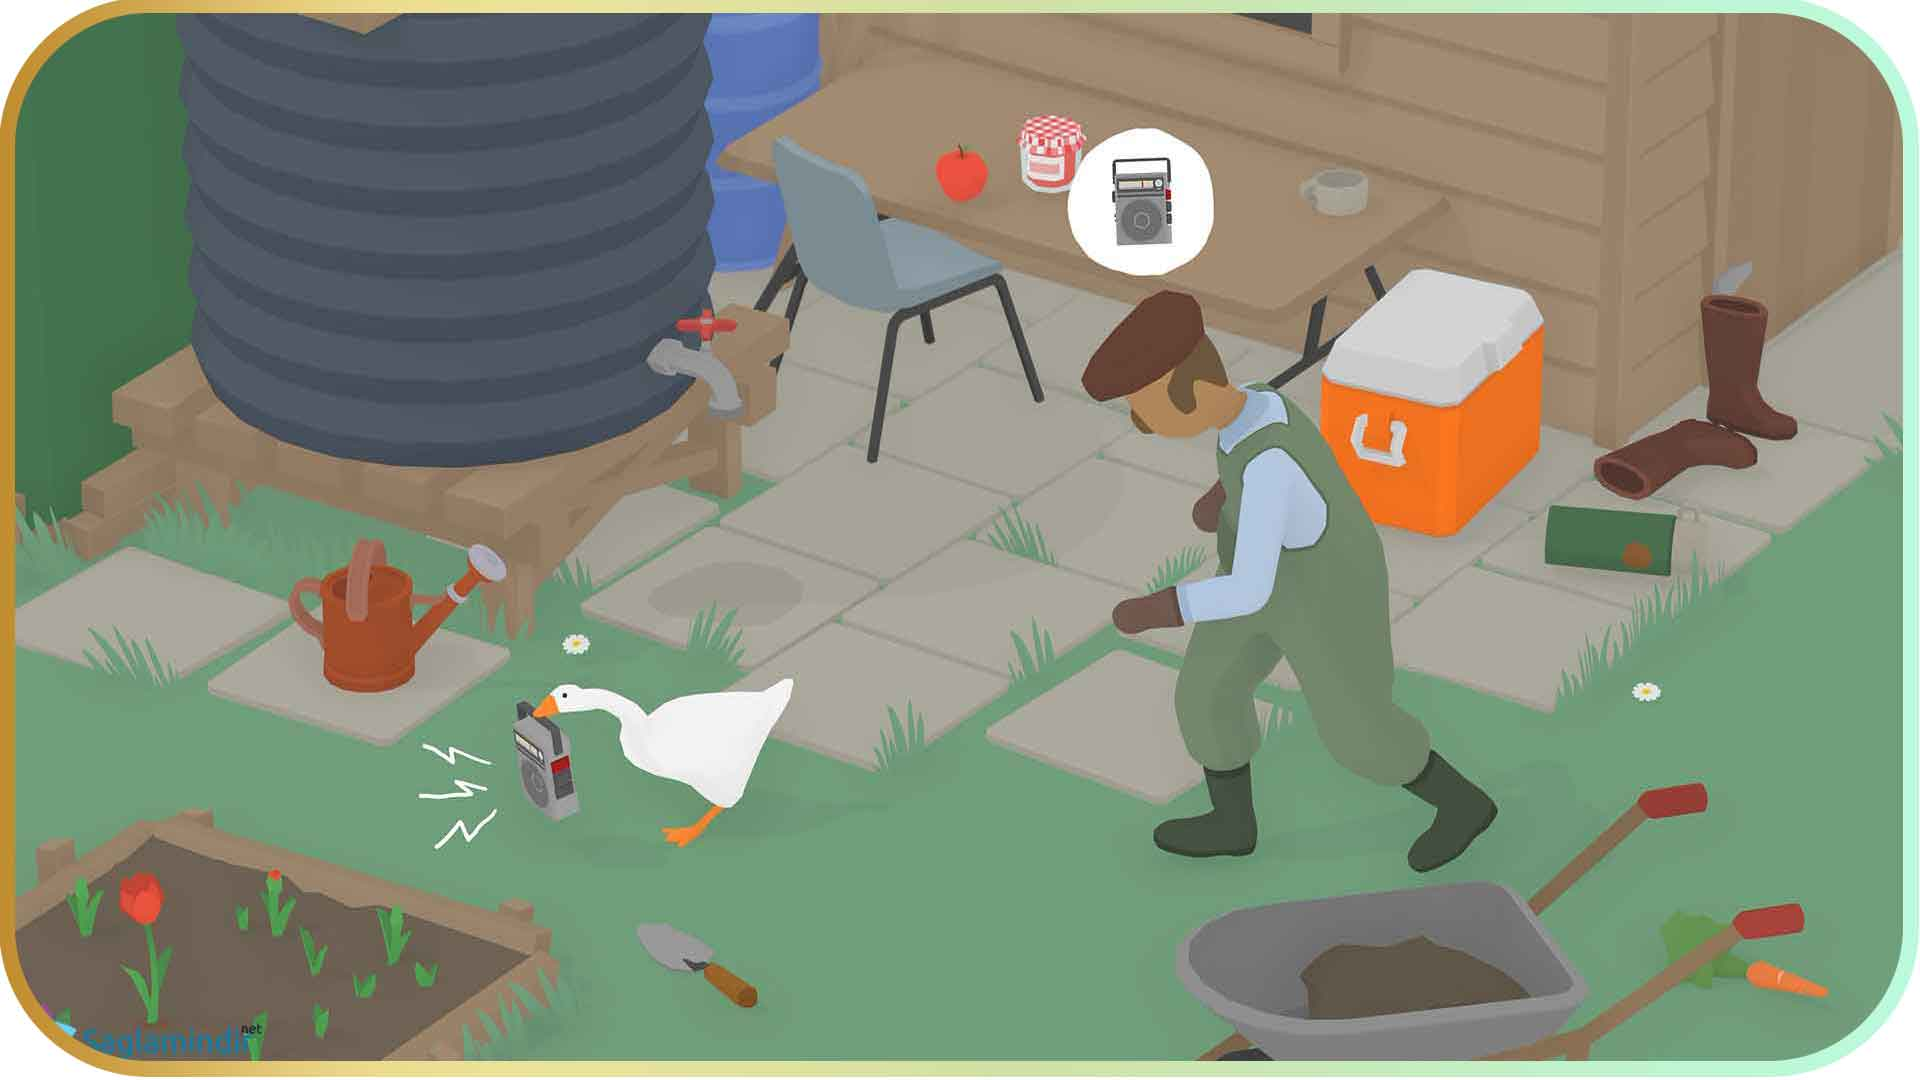 Untitled Goose Game full indir